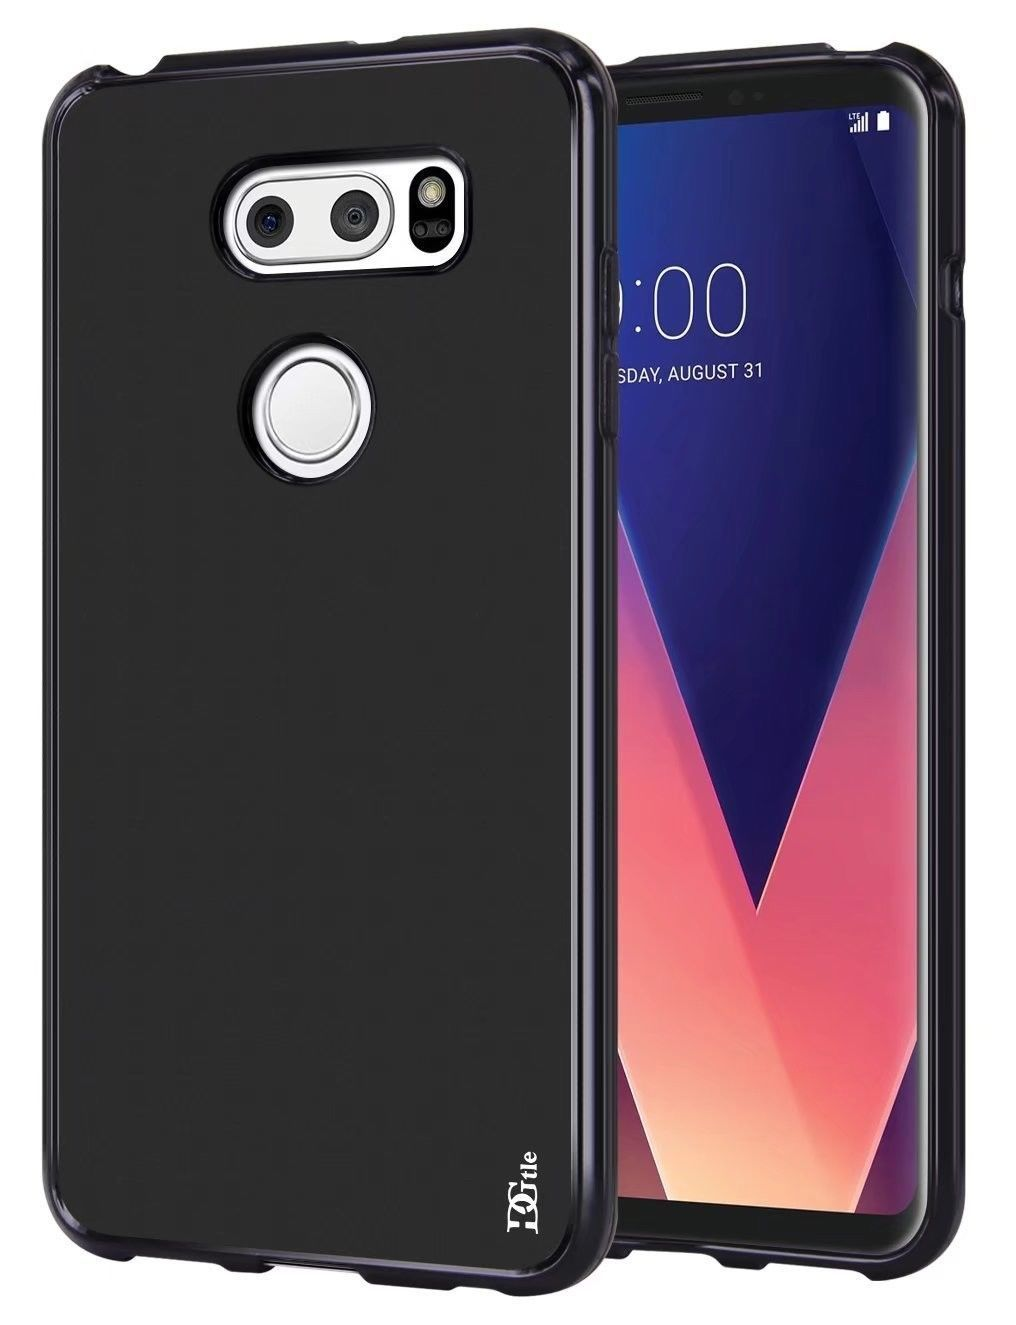 Primary image for For LG V30 Case Anti-Scratches TPU Gel Premium Slim Flexible Soft Bumper